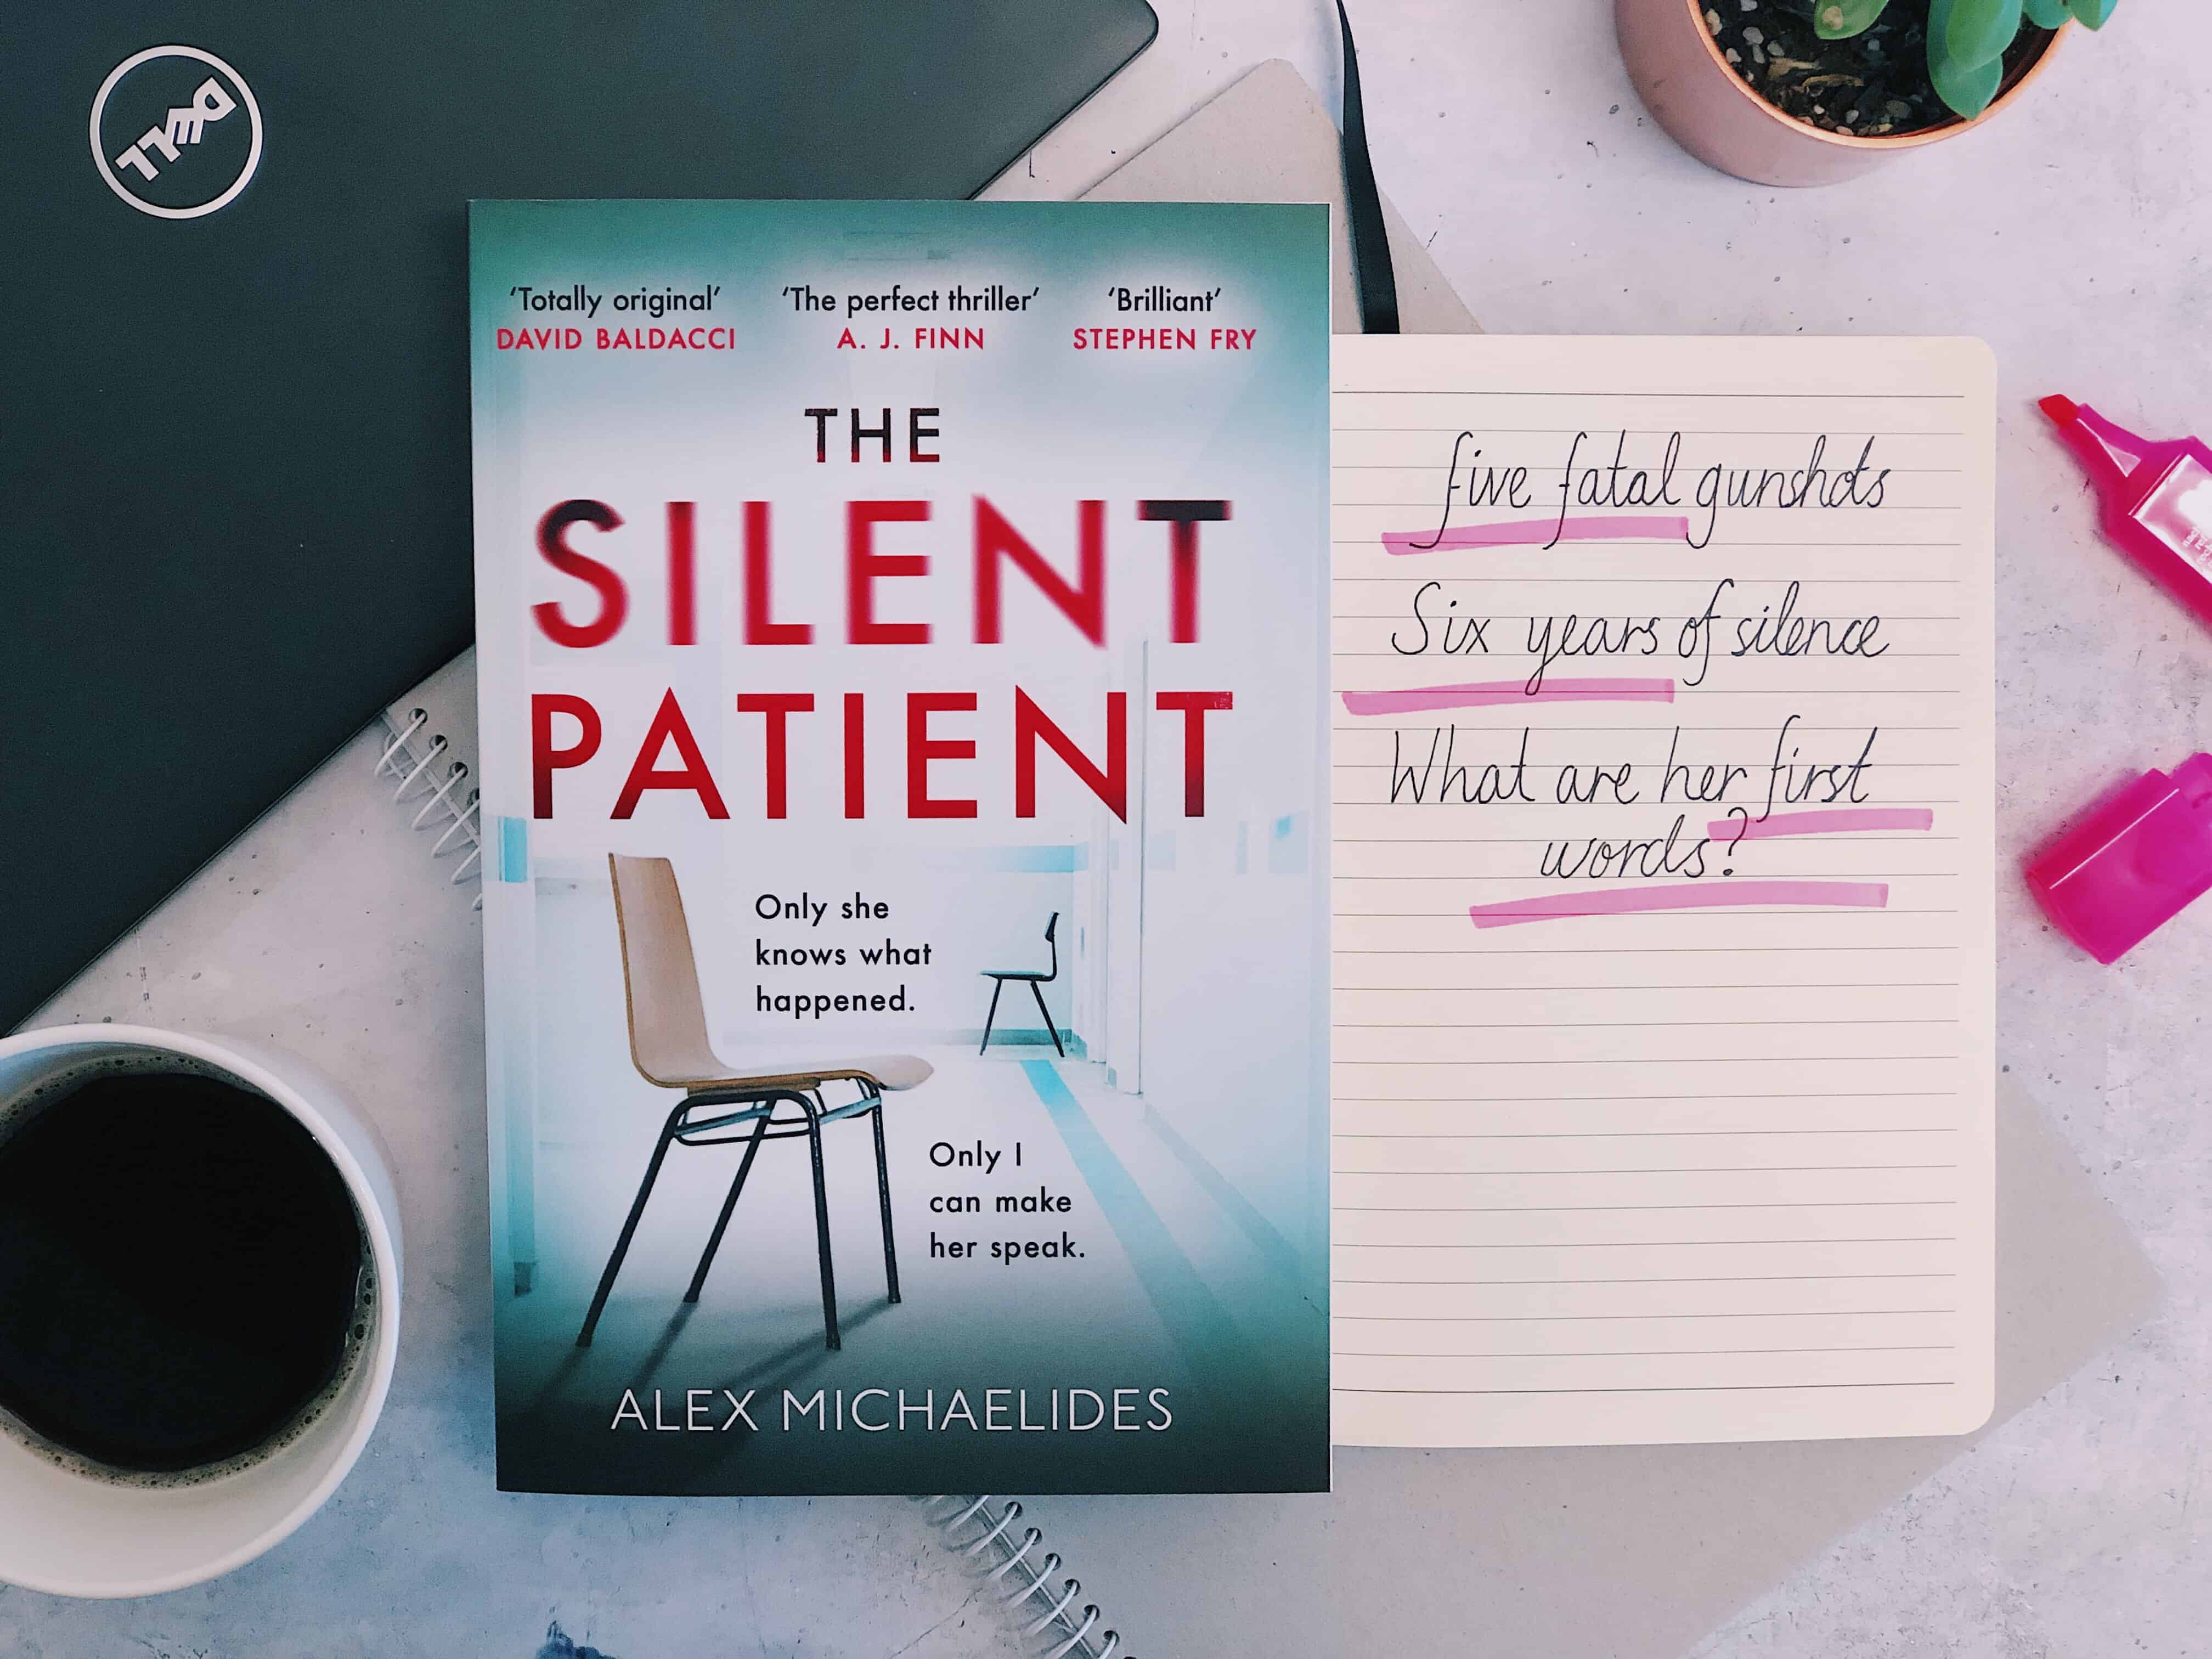 The Silent Patient Facebook scaled